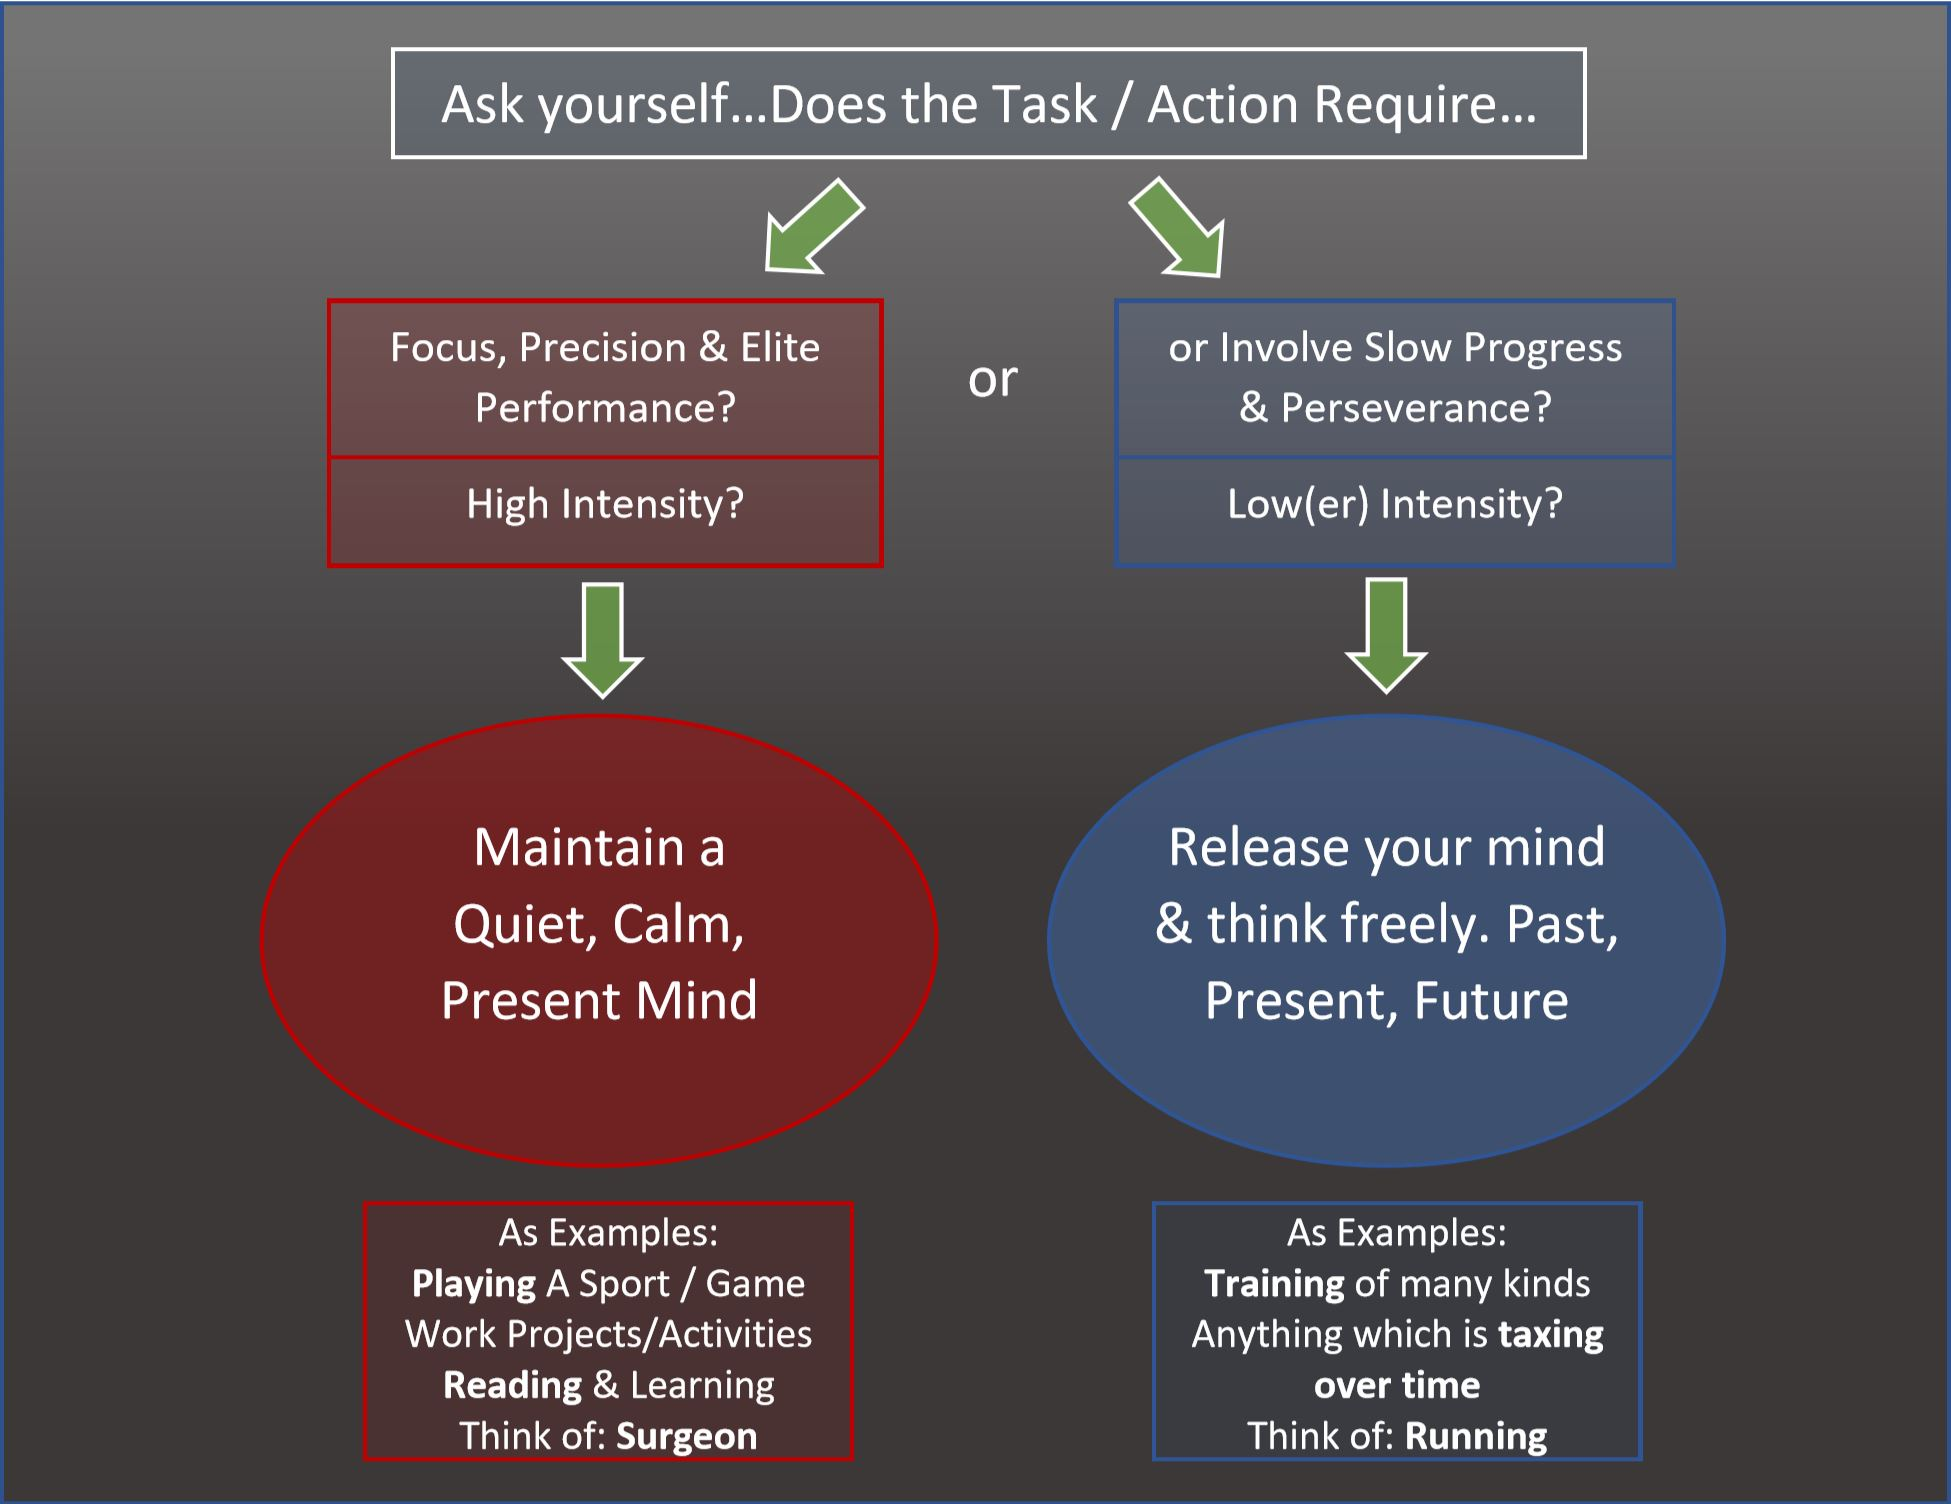 What mindset should you hold and when?